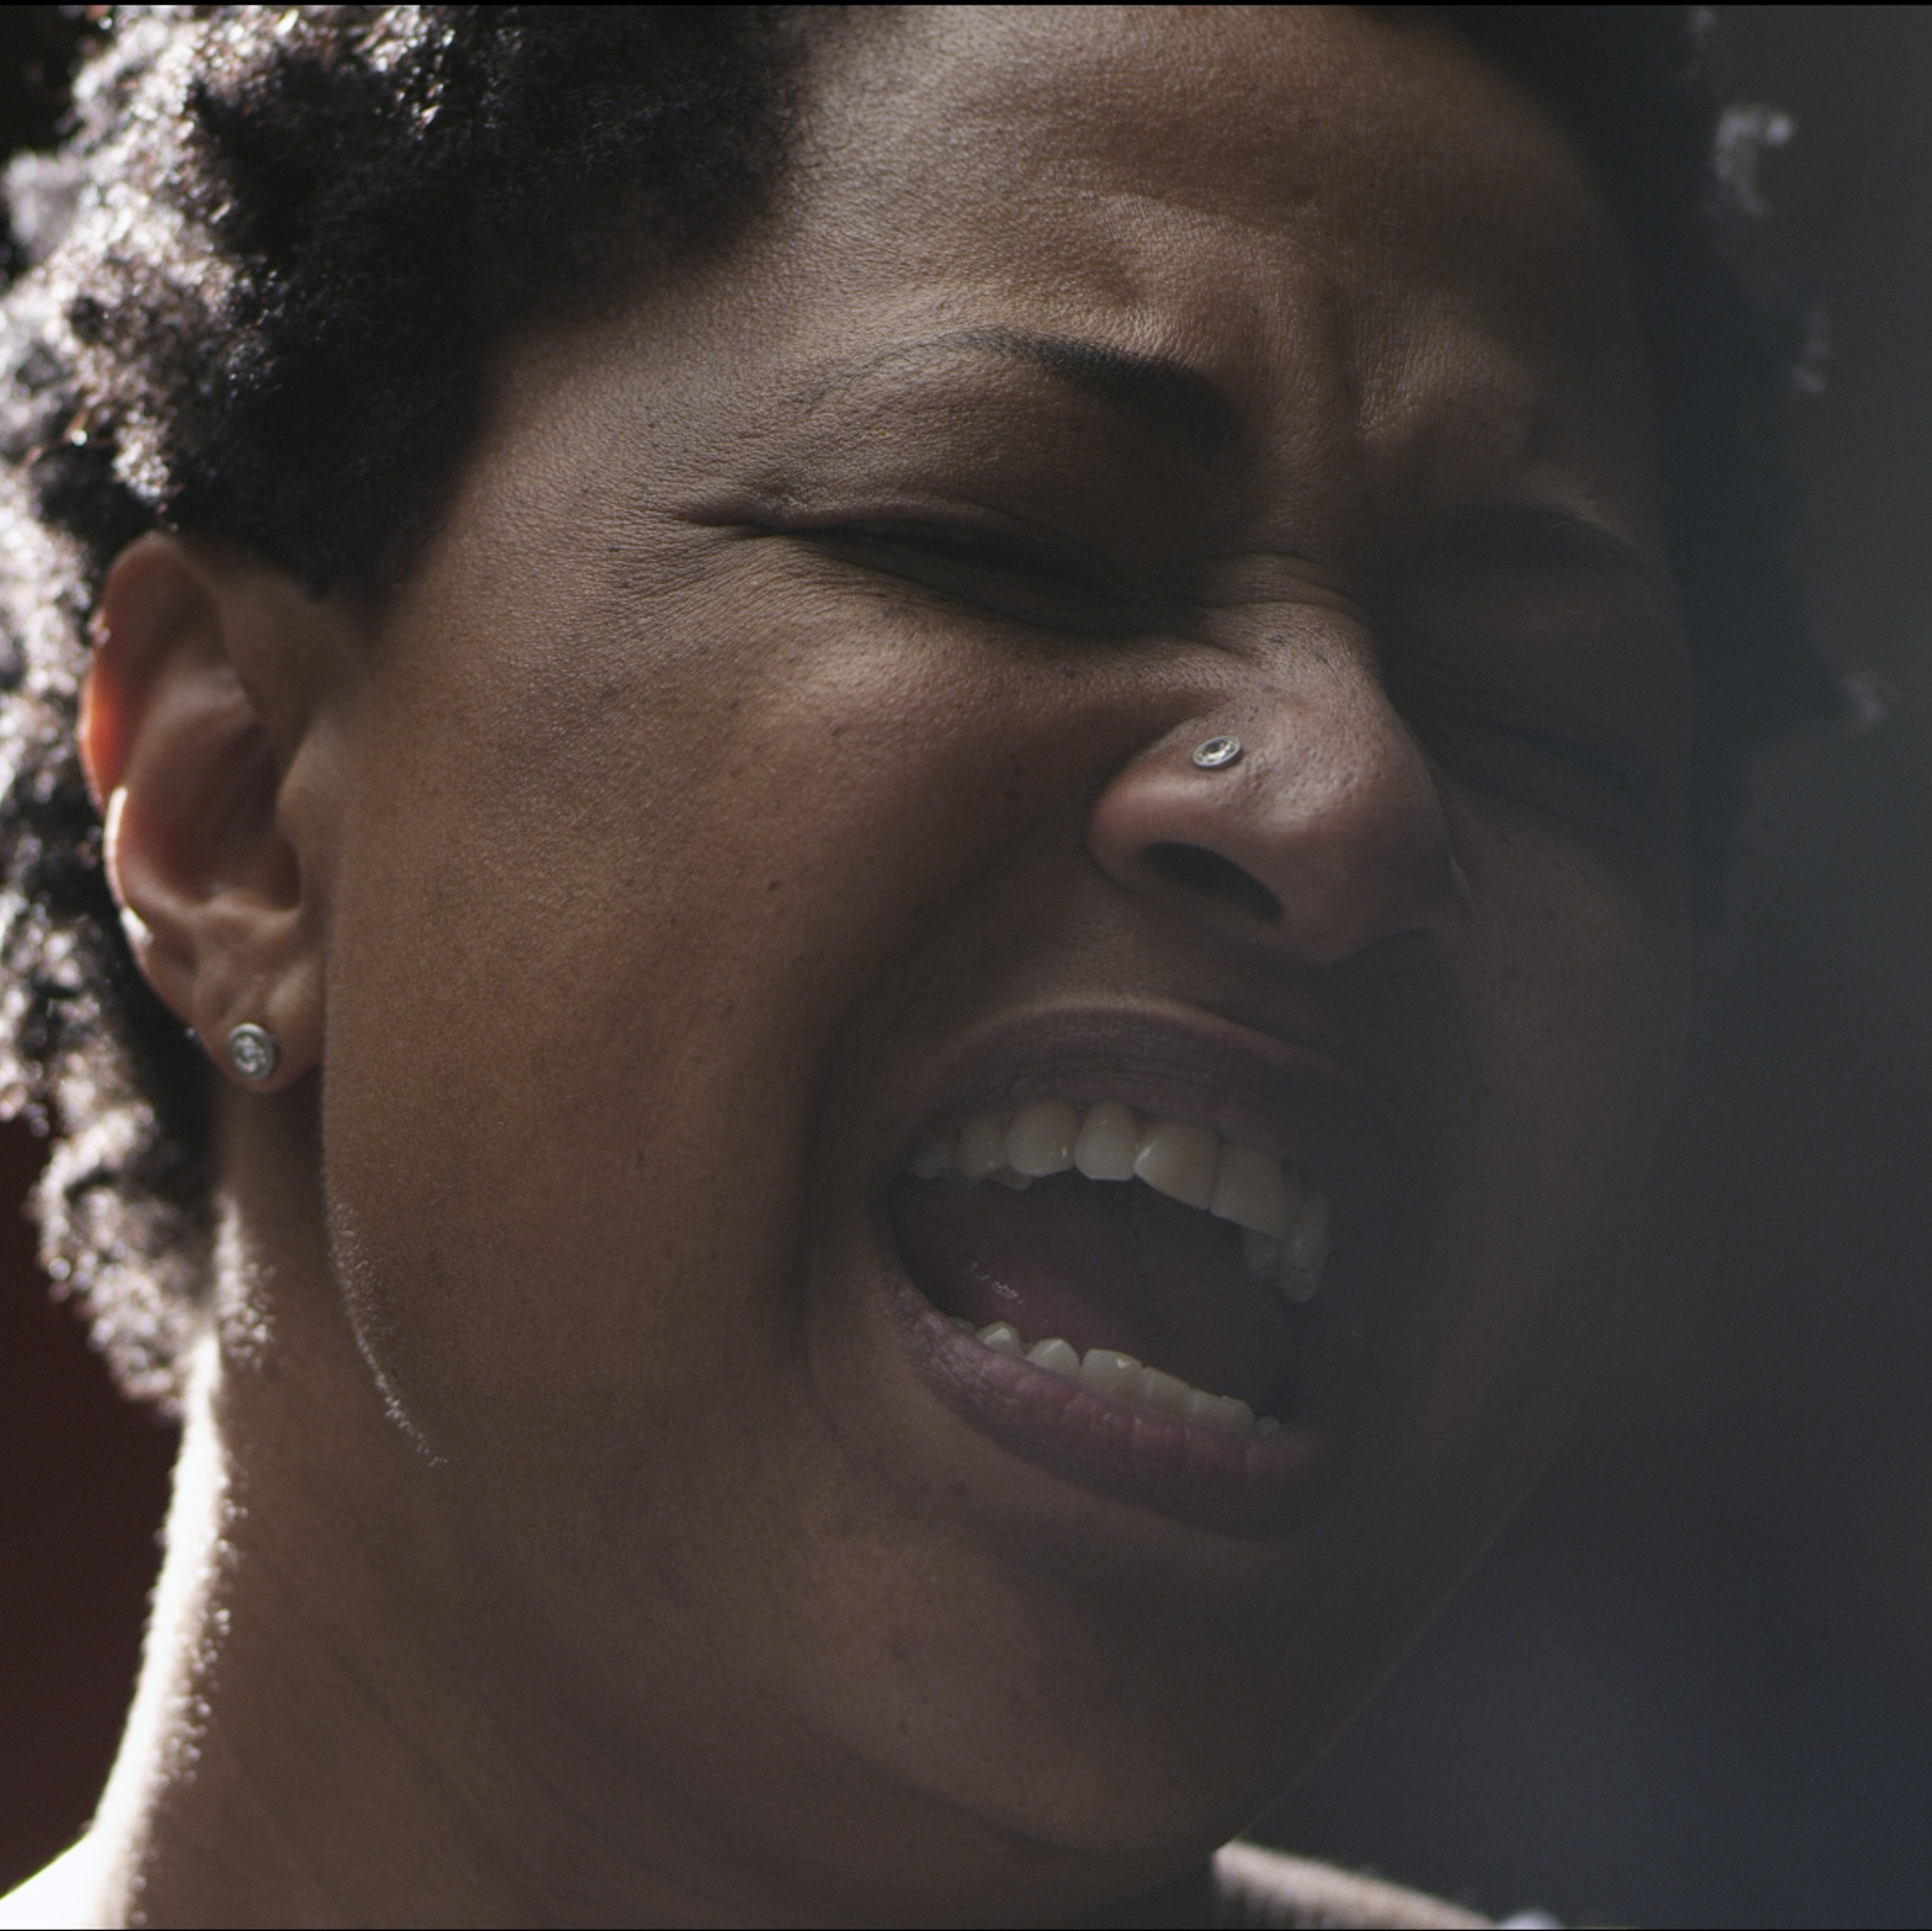 Lisa Fischer has sung backup for The Rolling Stones, Luther Vandross and Tina Turner.